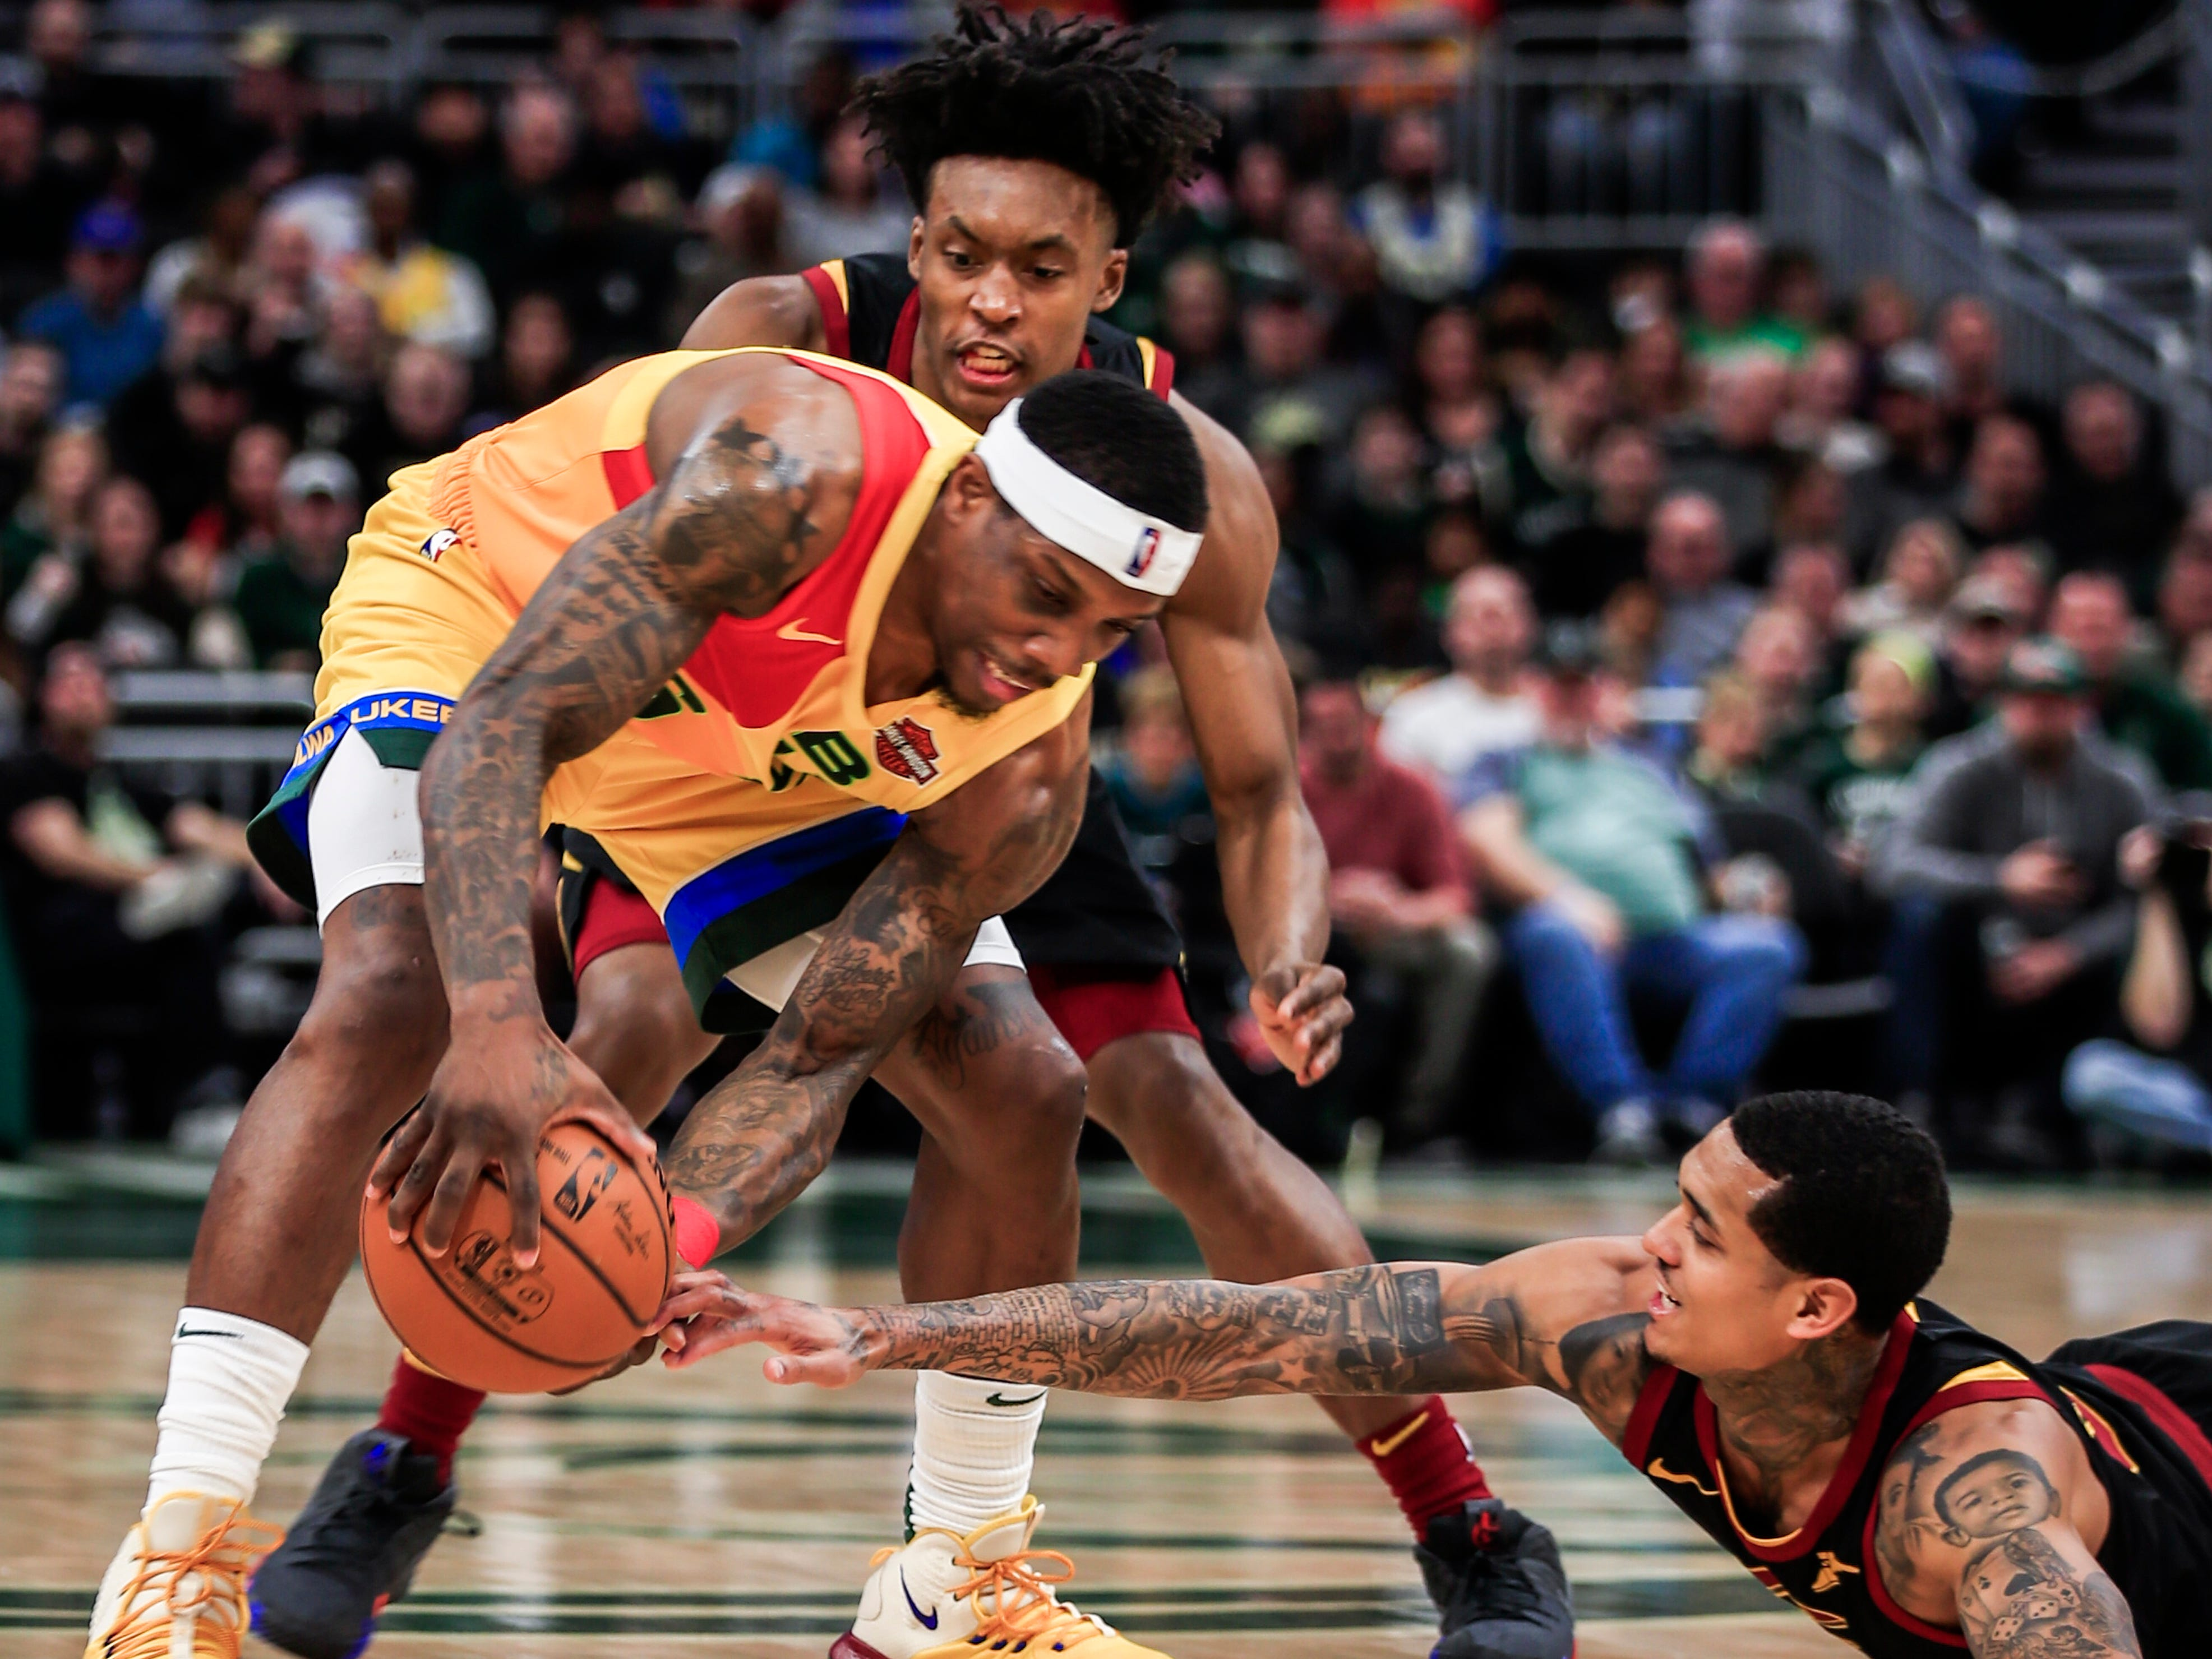 Bucks guard Eric Bledsoe grabs a loose ball before either Jordan Clarkson (right) or Collin Sexton of the Cavs can get to it.